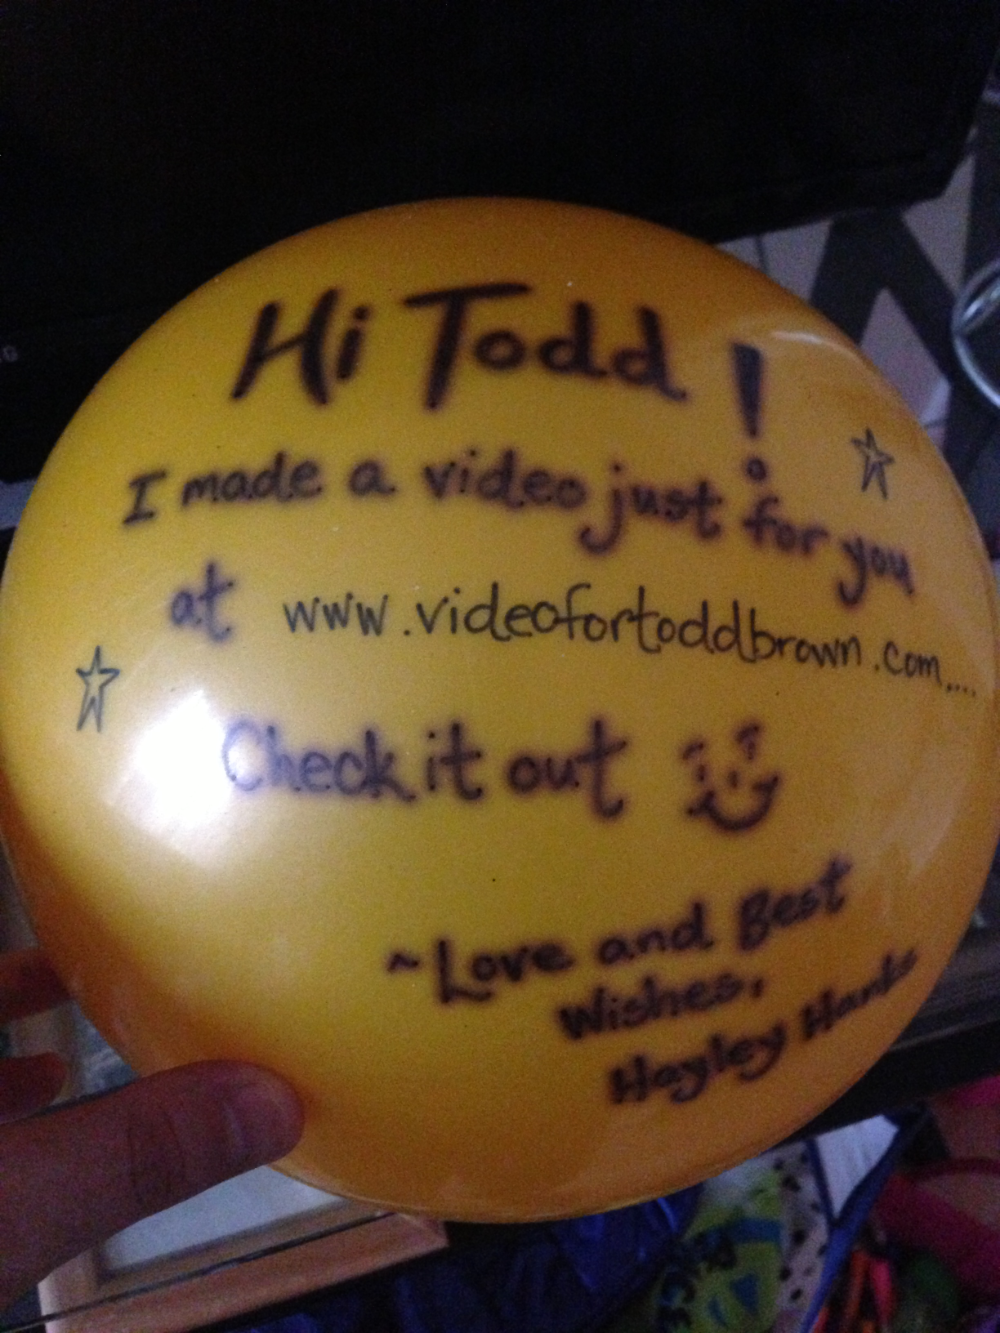 Video for Todd Brown Marketing Strategy